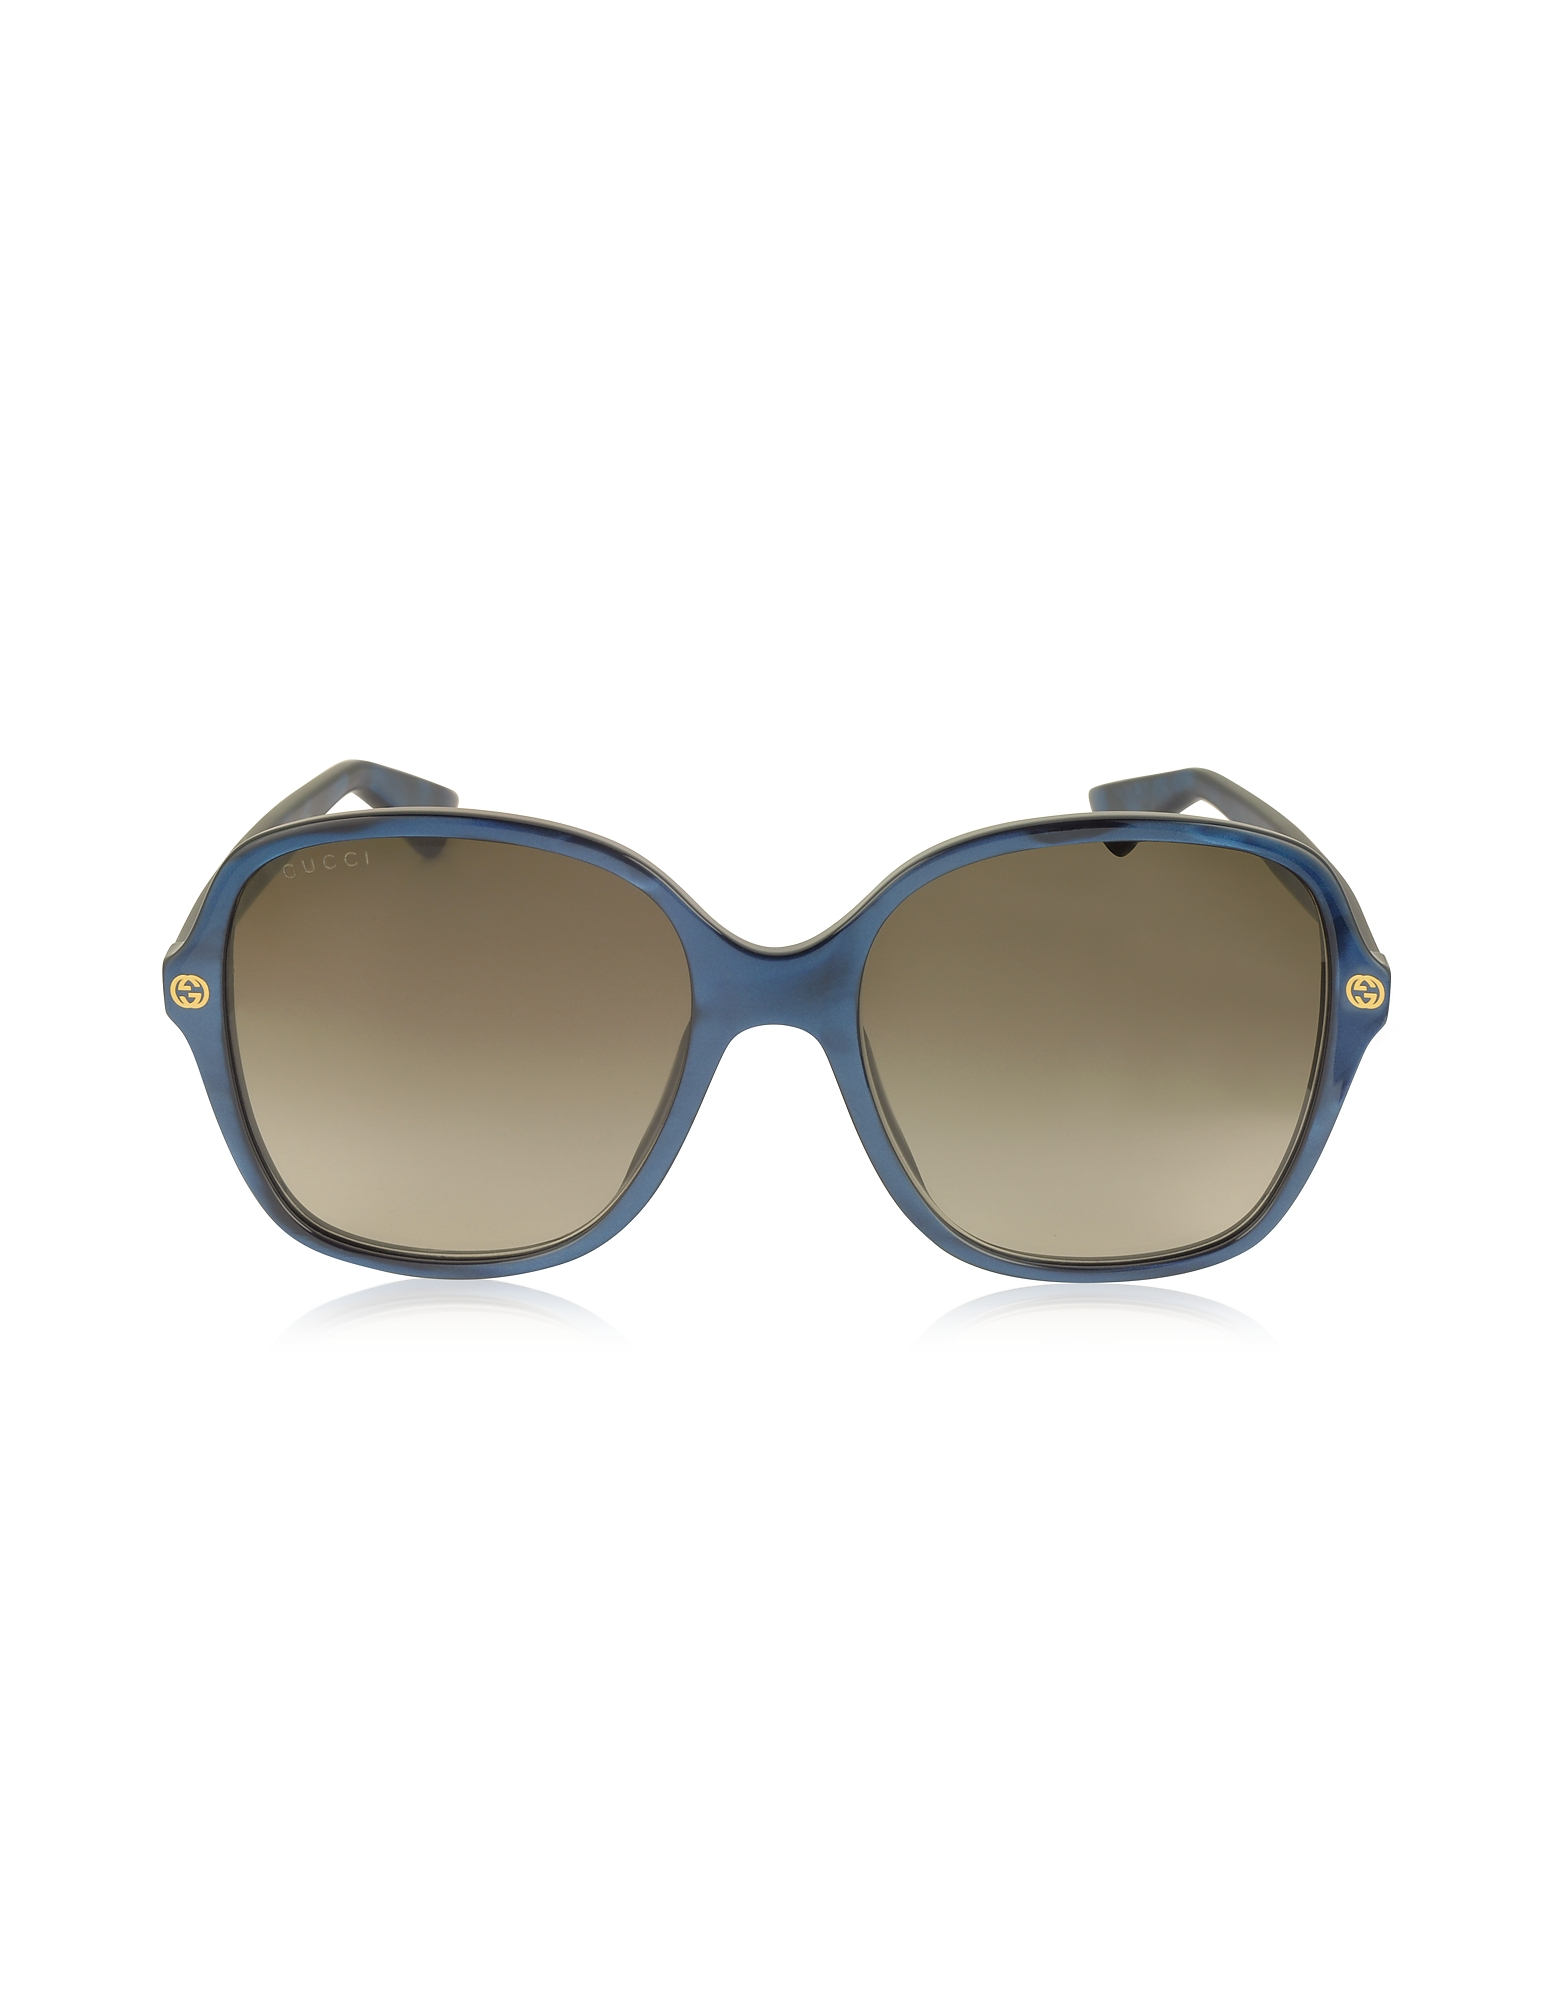 Gucci Designer Sunglasses, GG0092S Acetate Square Women's Sunglasses